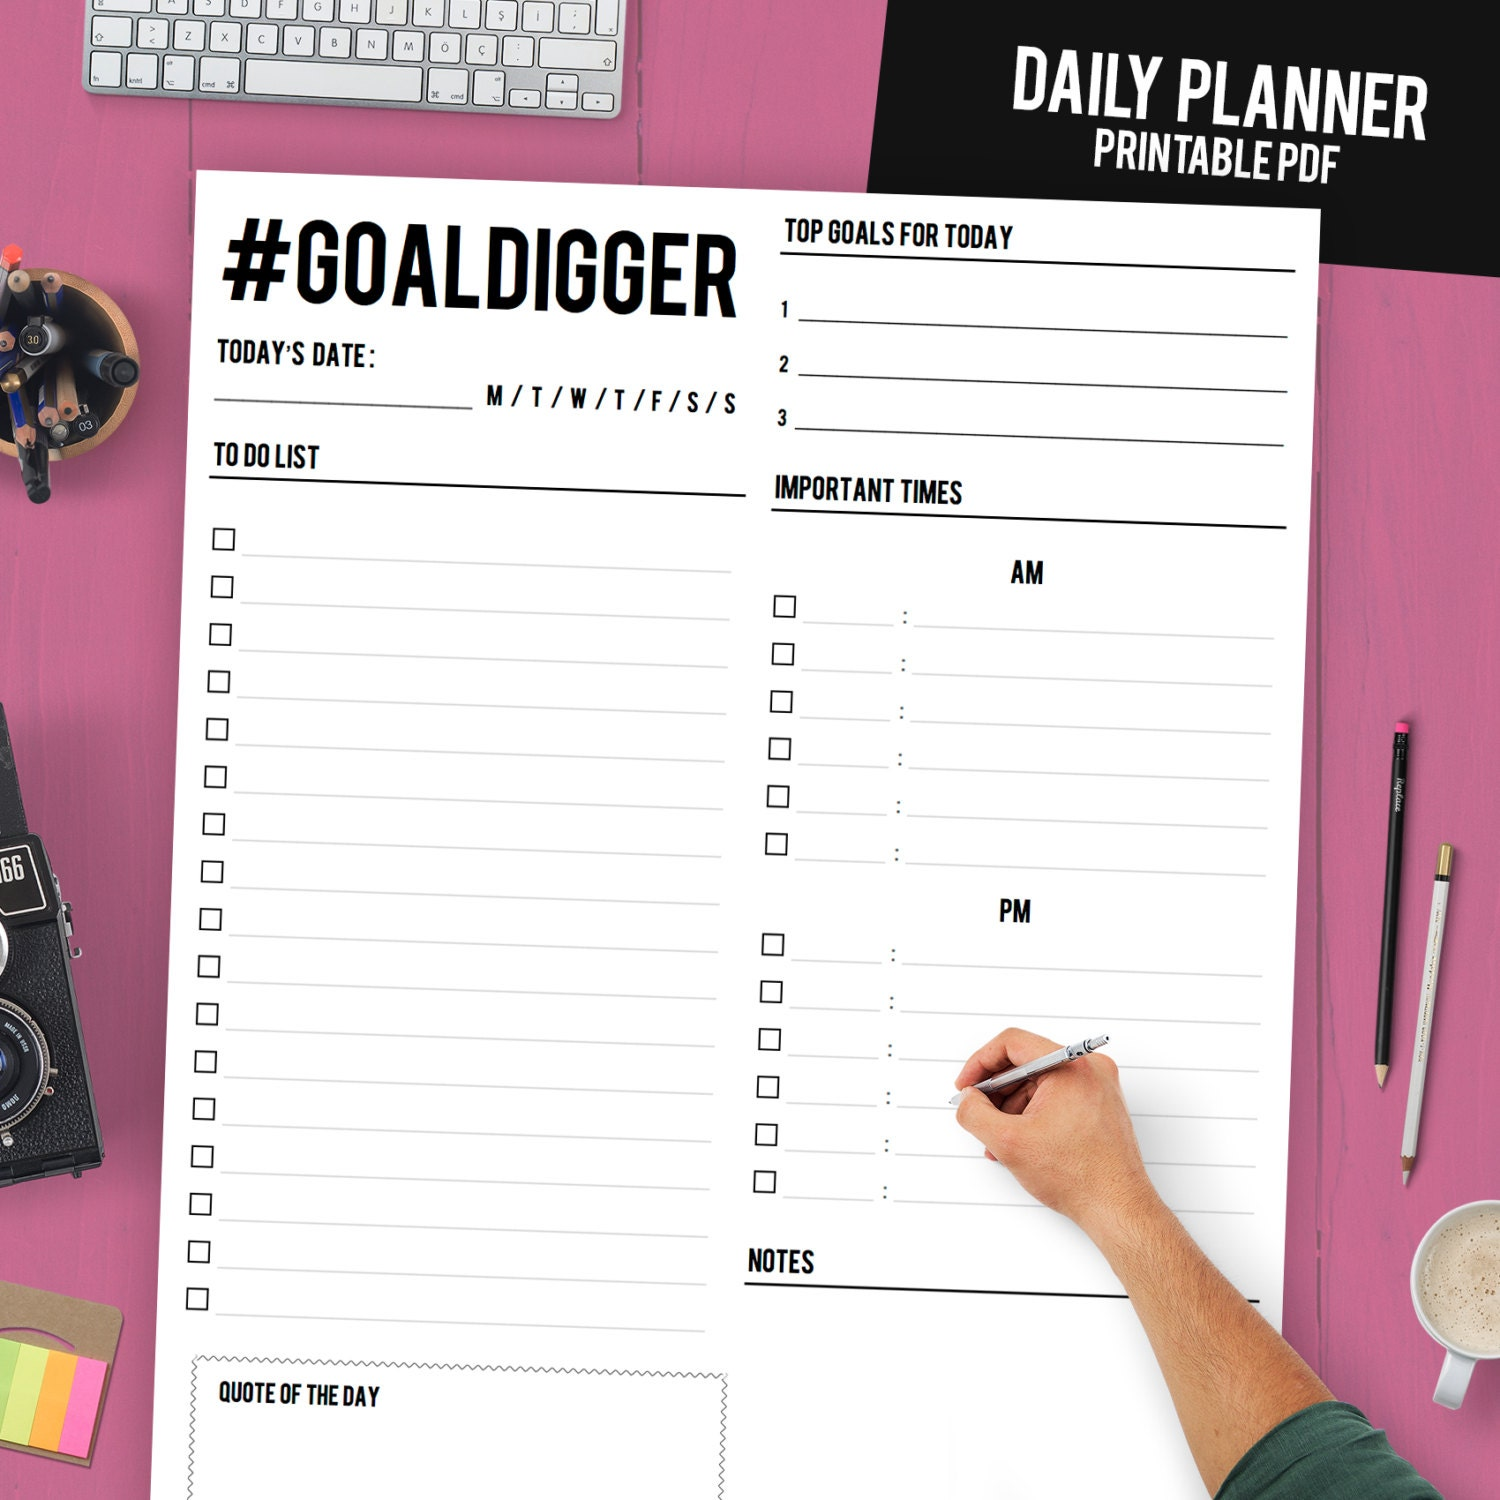 Daily Planner Printable Daily Planner Binder Daily - Daily organizer template